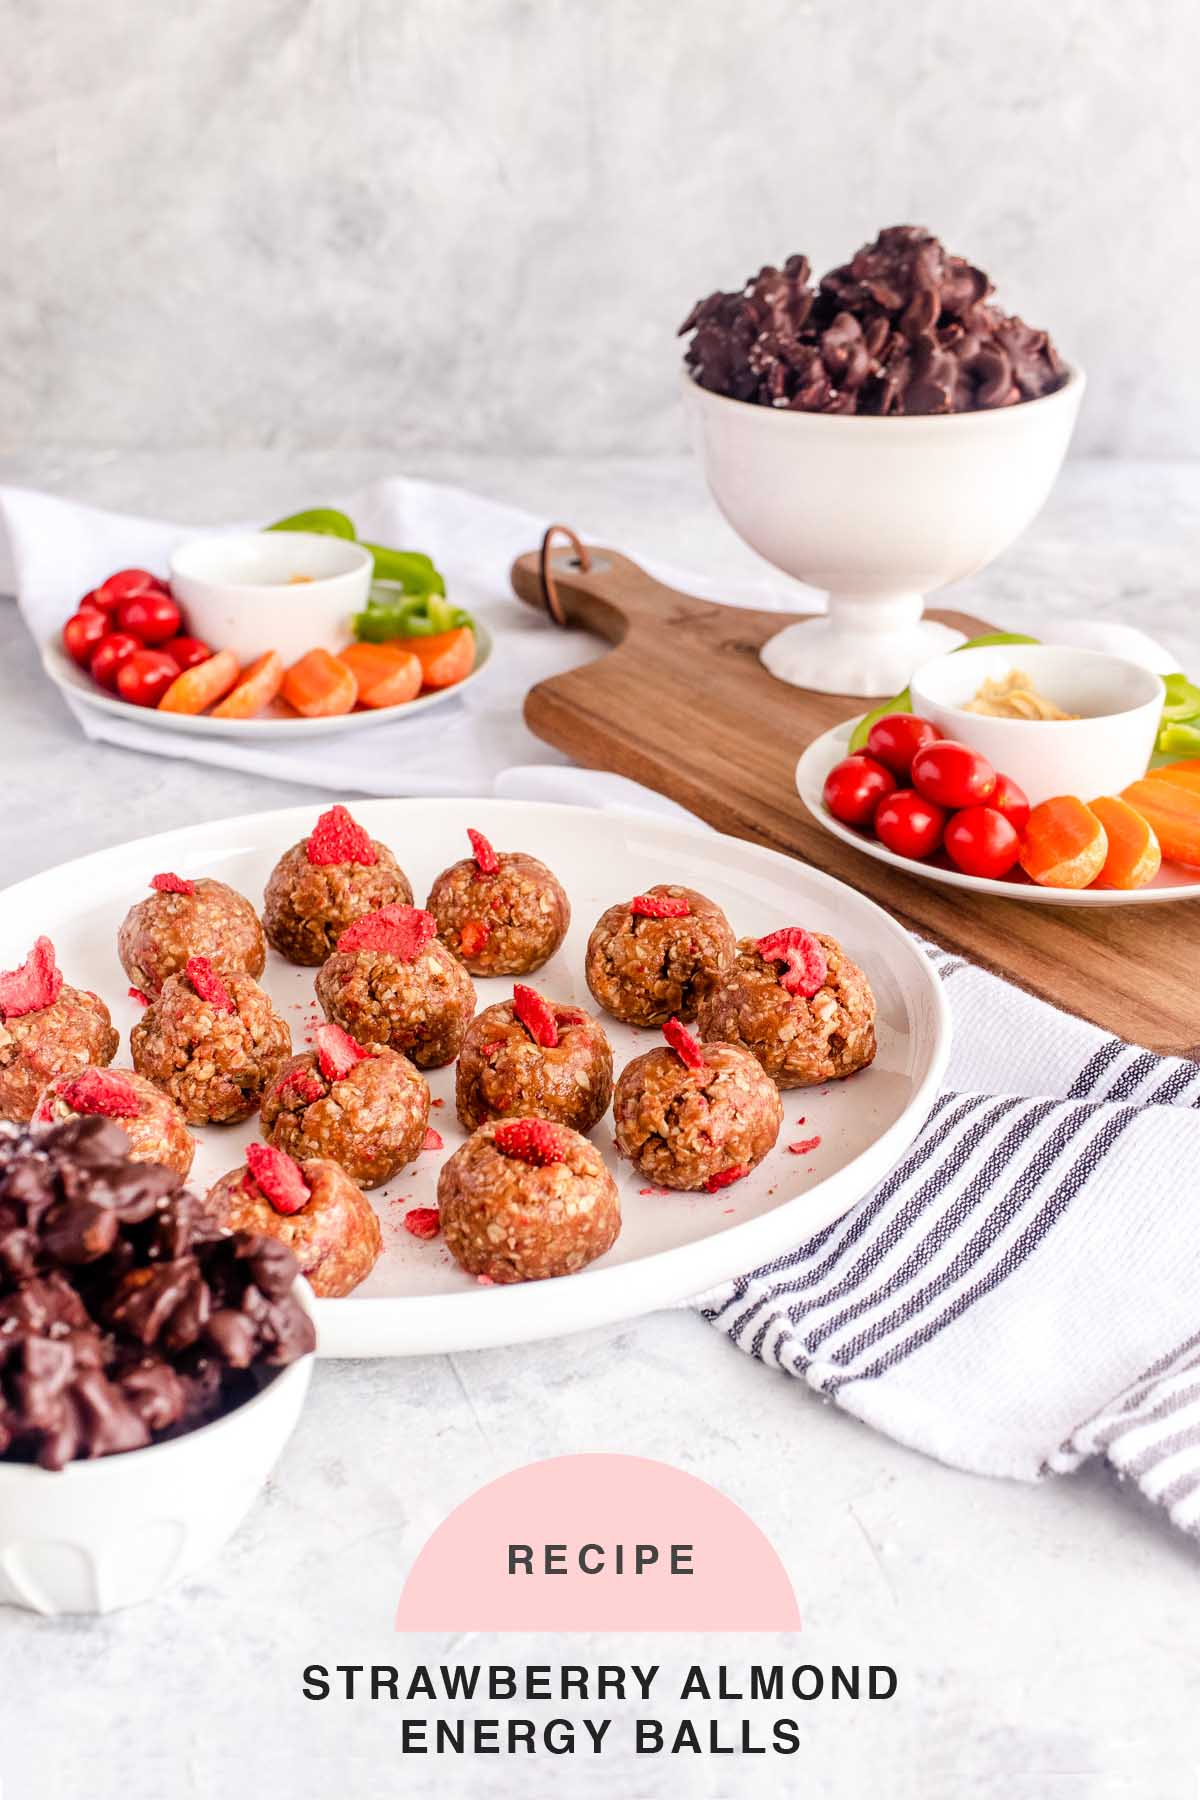 RECIPE Strawberry Almond Energy Balls by top Houston lifestyle blogger Ashley Rose of Sugar & Cloth